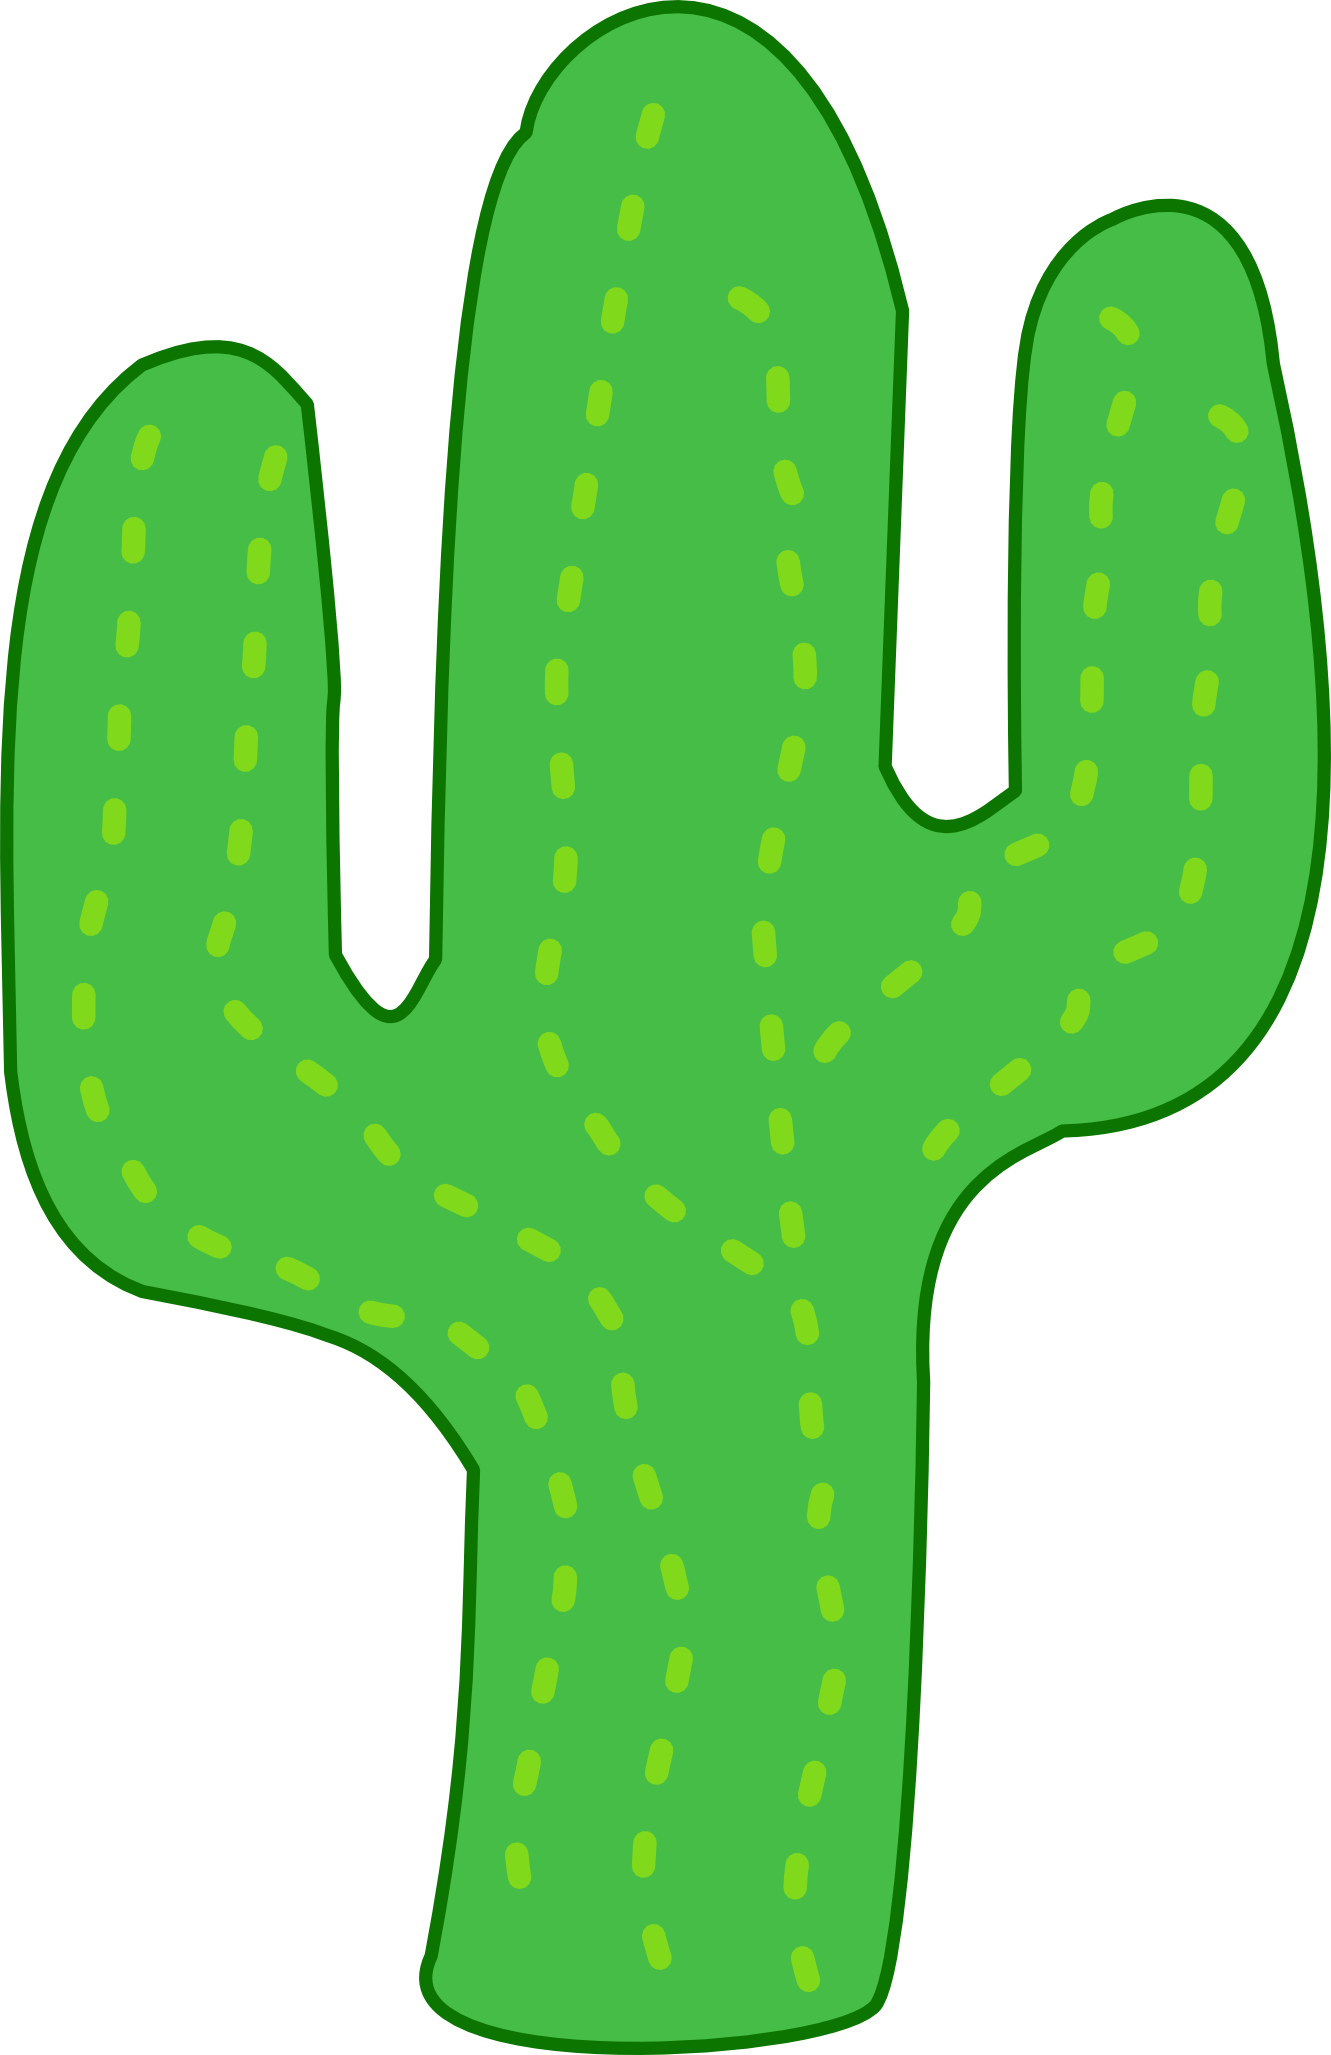 Cactus Drawing - ClipArt Best